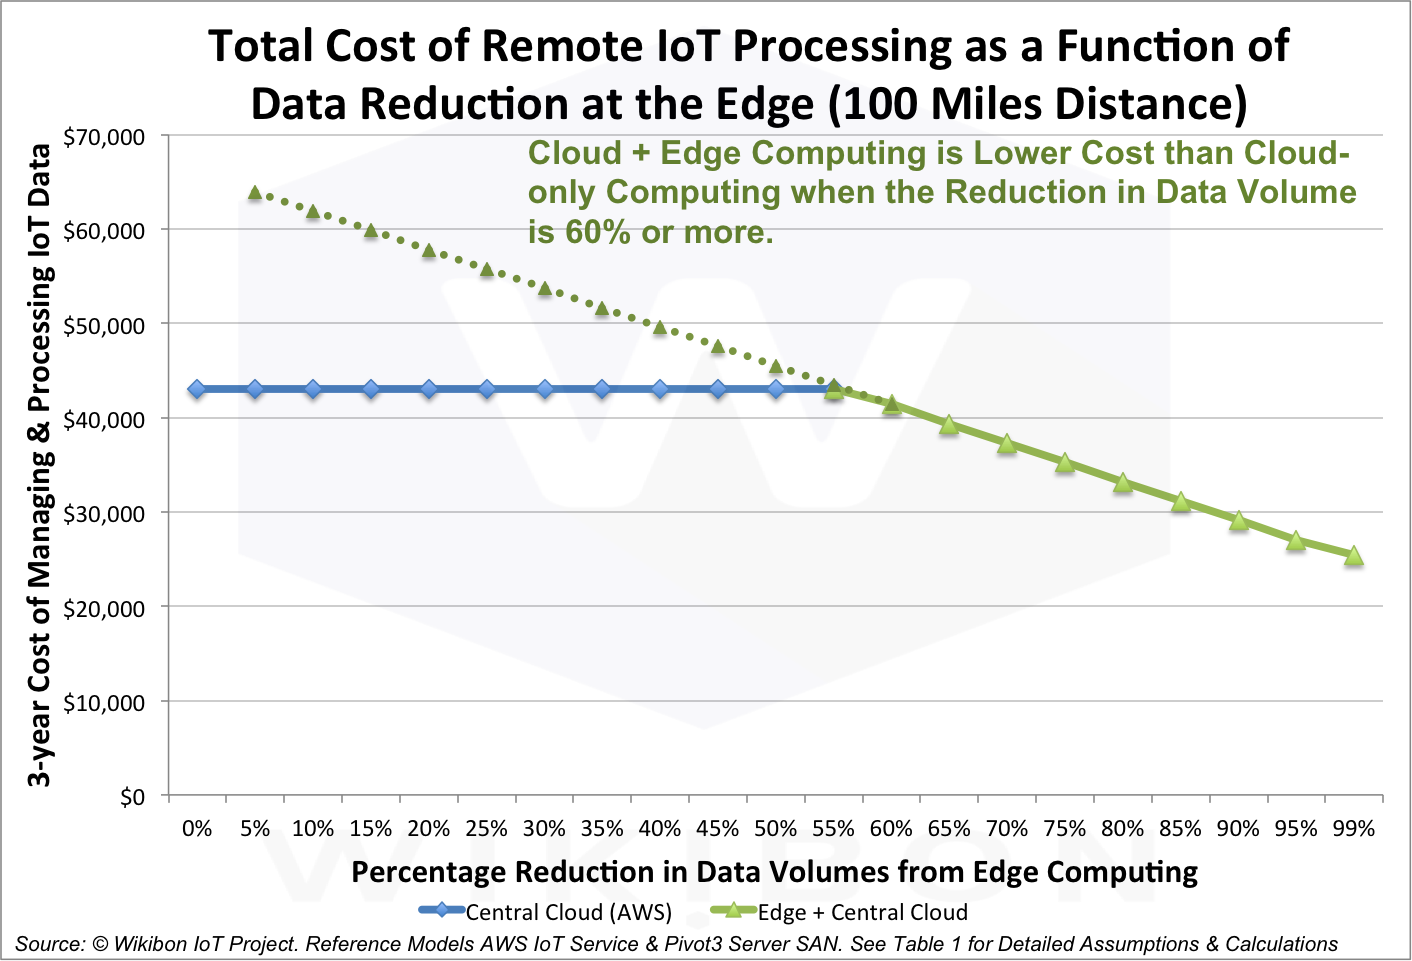 Figure 3: Total Cost of Remote IoT Processing a a Function of Data Reduction at the Edge Source: © Wikibon IoT Project. Reference Models AWS IoT Service & Pivot3 Server SAN. One assumption is a distance of 100 miles between the Edge computing and the Datacenter. See Table 1 for additional Detailed Assumptions & Calculations.